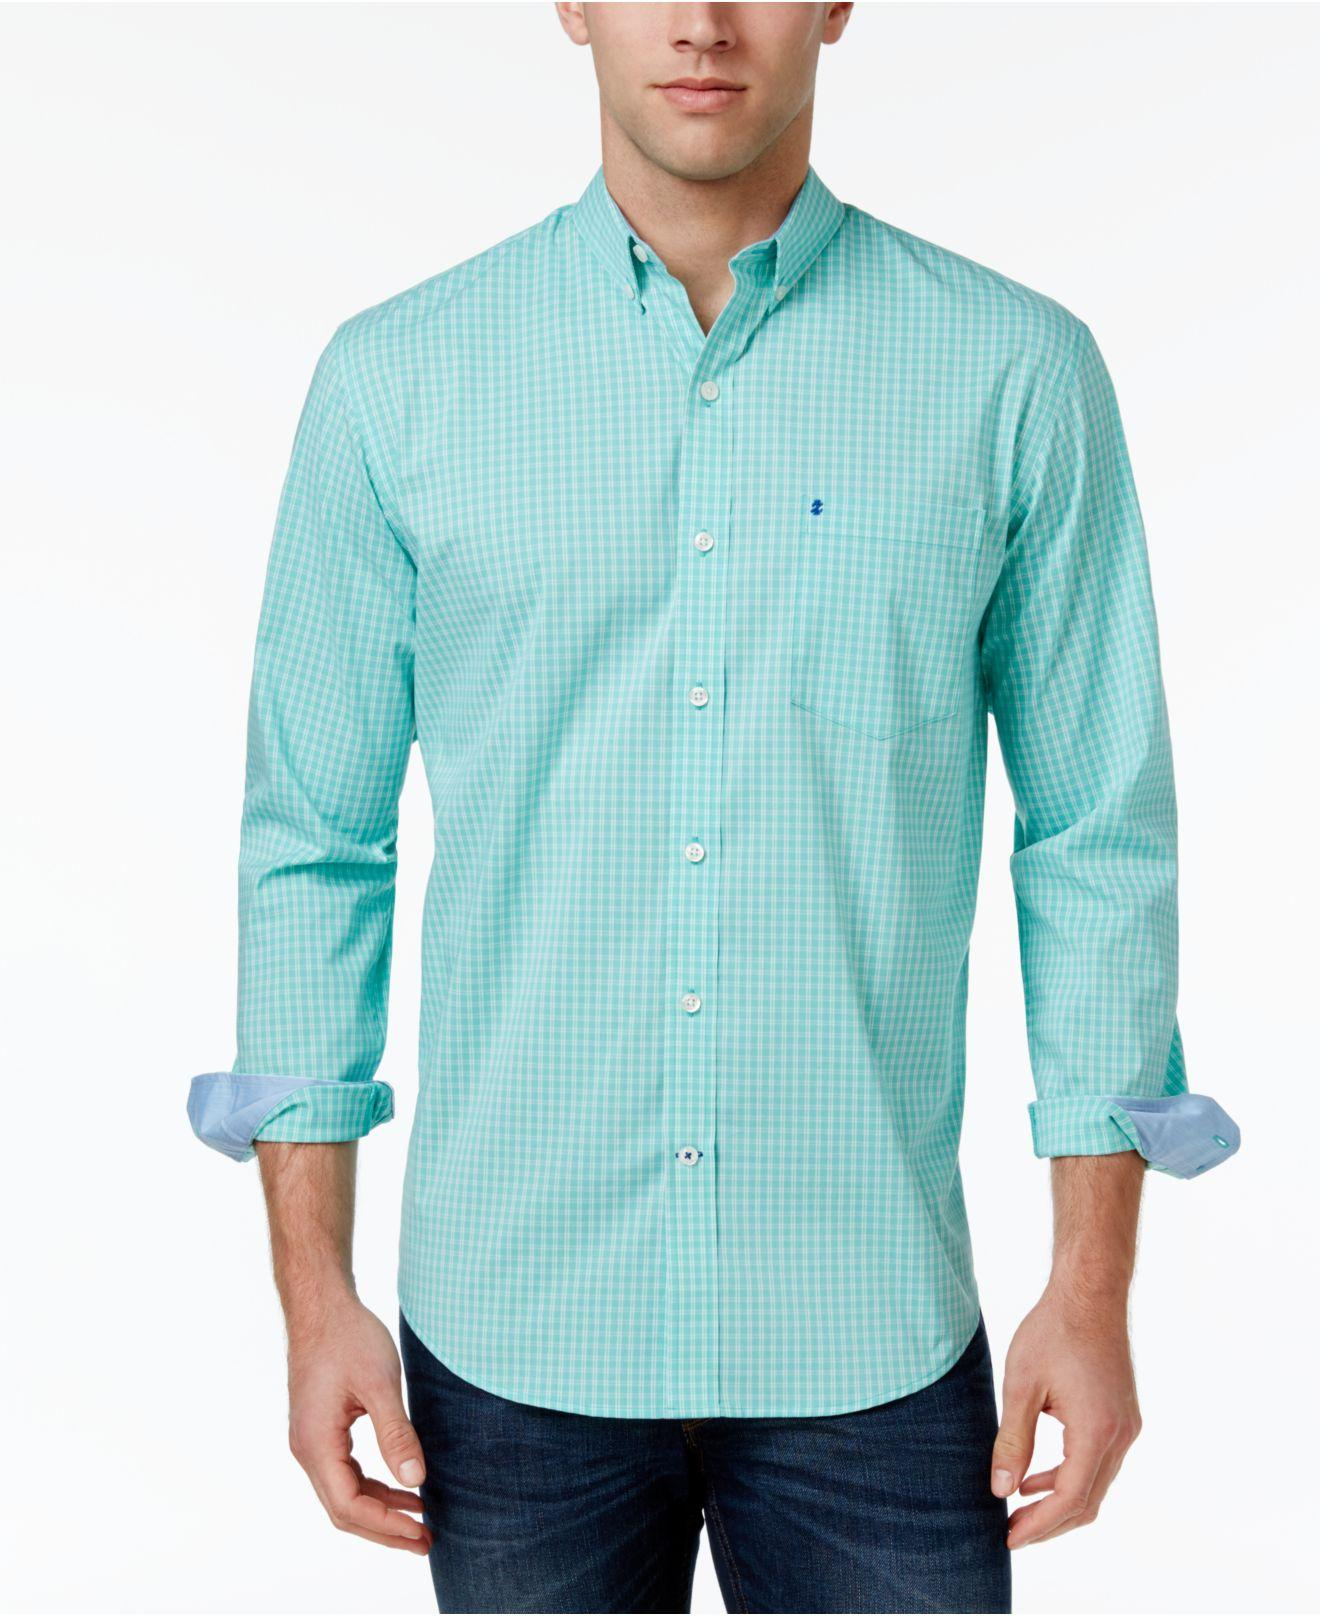 Lyst izod men 39 s non iron stretch performance shirt in for What is a non iron shirt